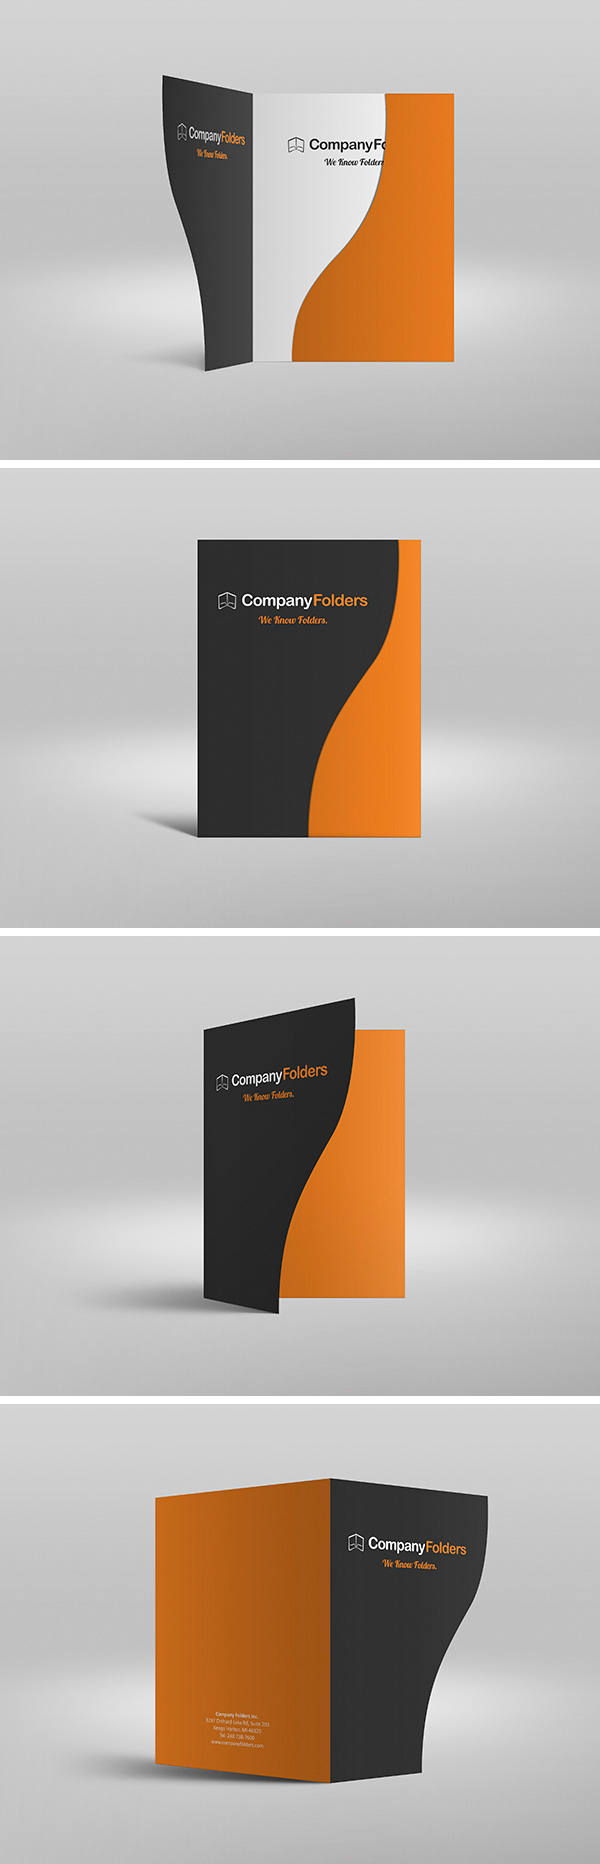 Serpentine Presentation Folder - Free MockUp